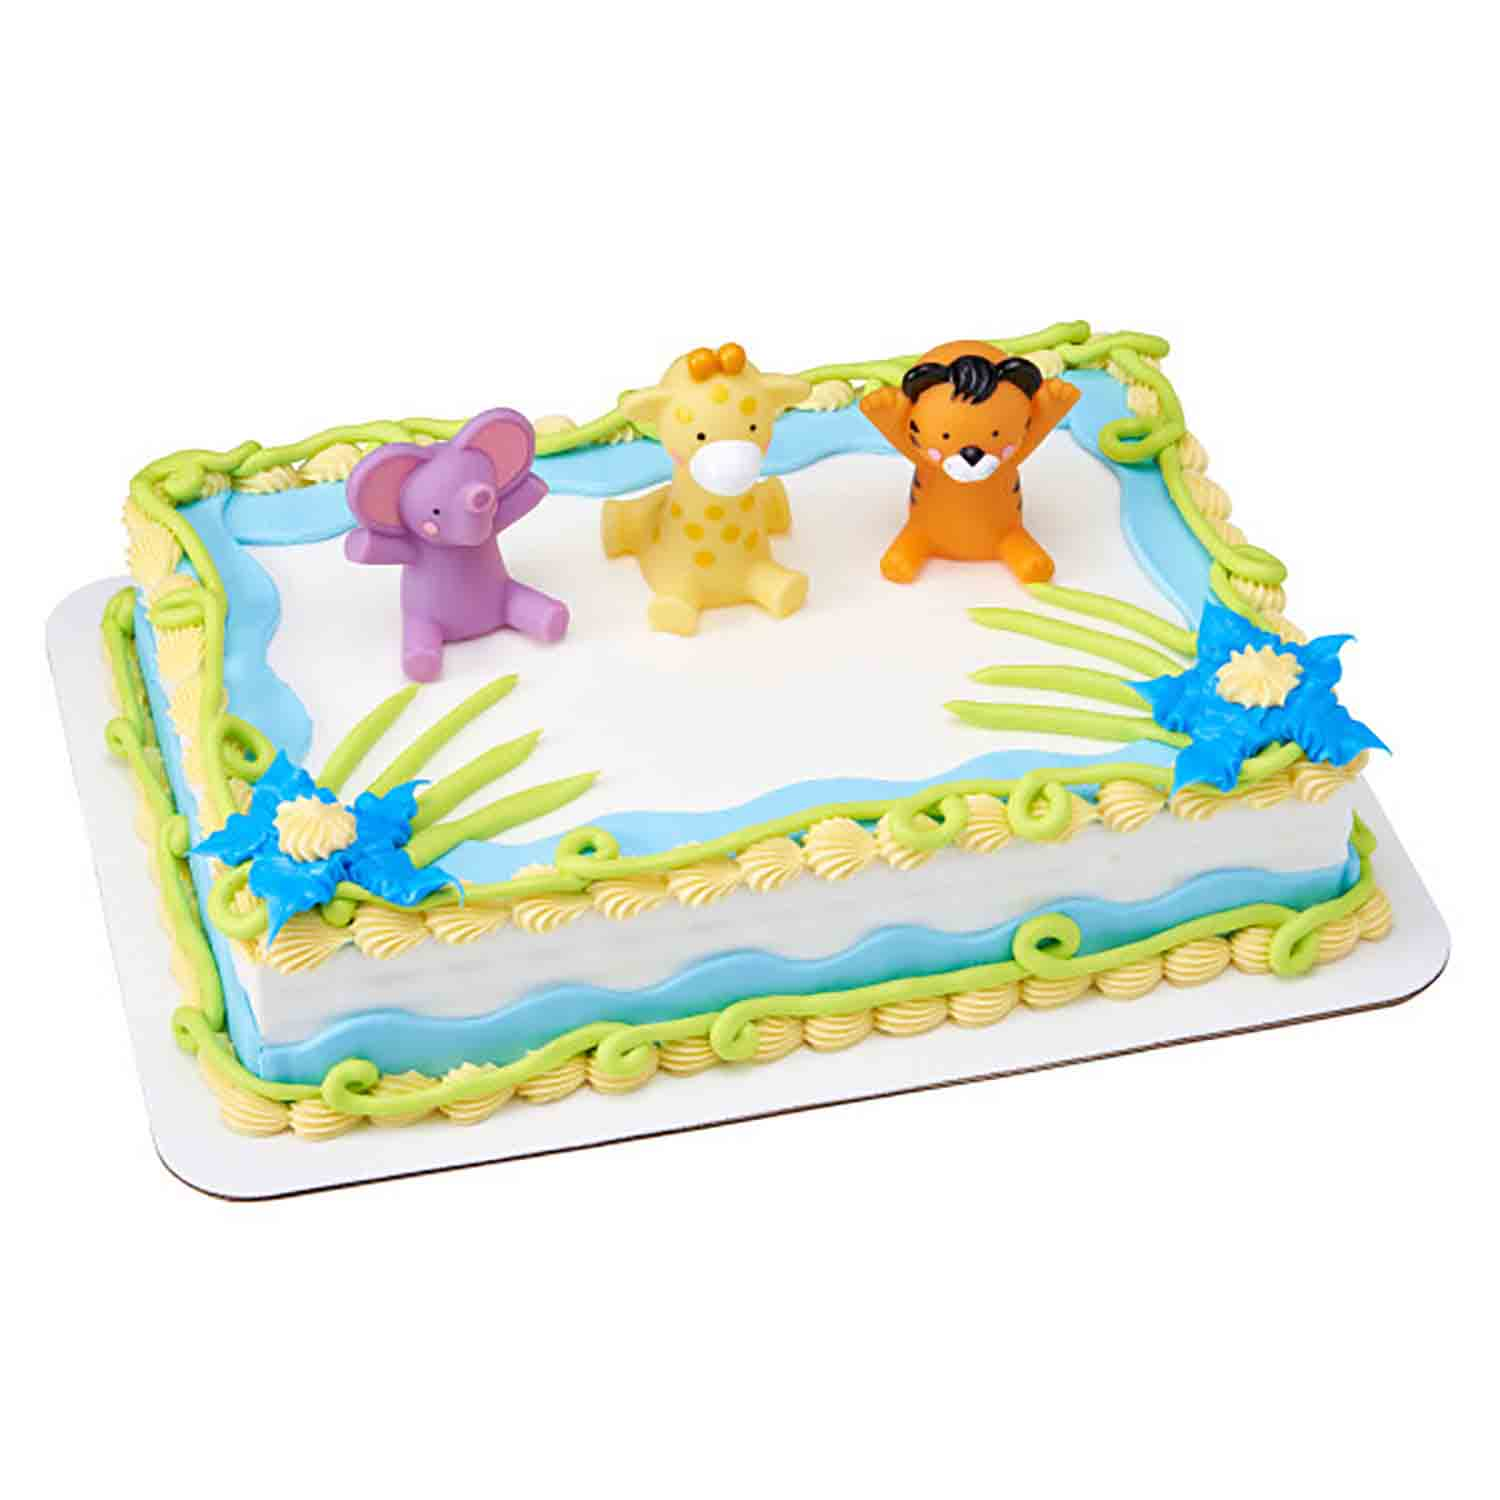 Bath Toy Cake Topper Set